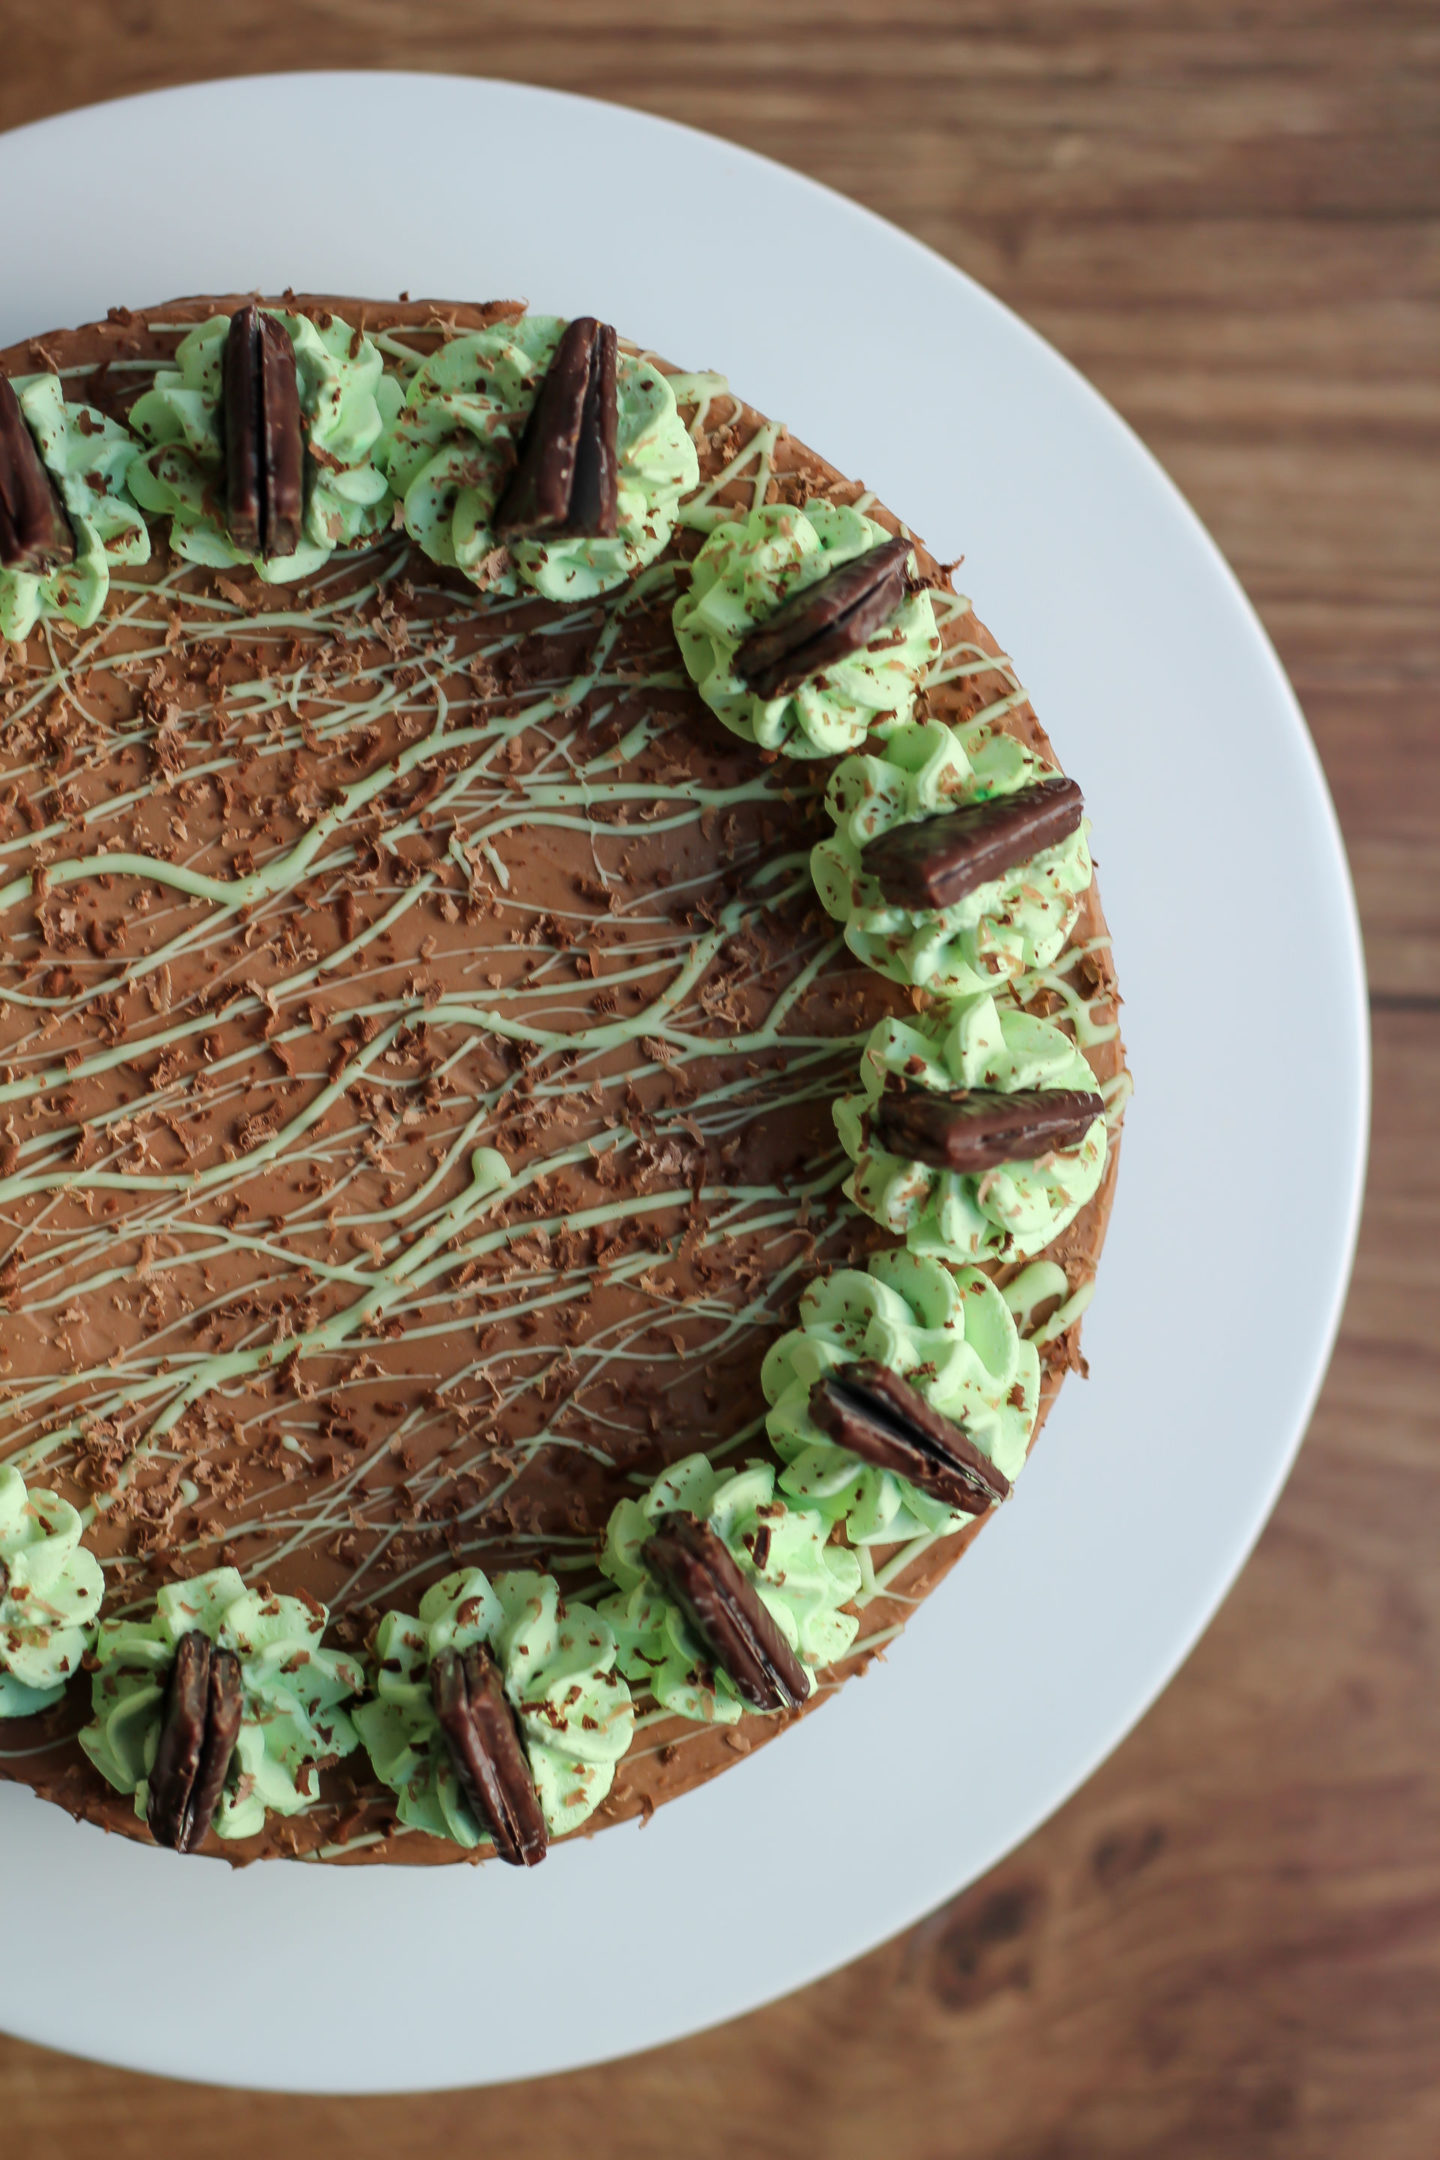 Overhead view of almost whole no-bake mint chocolate cheesecake